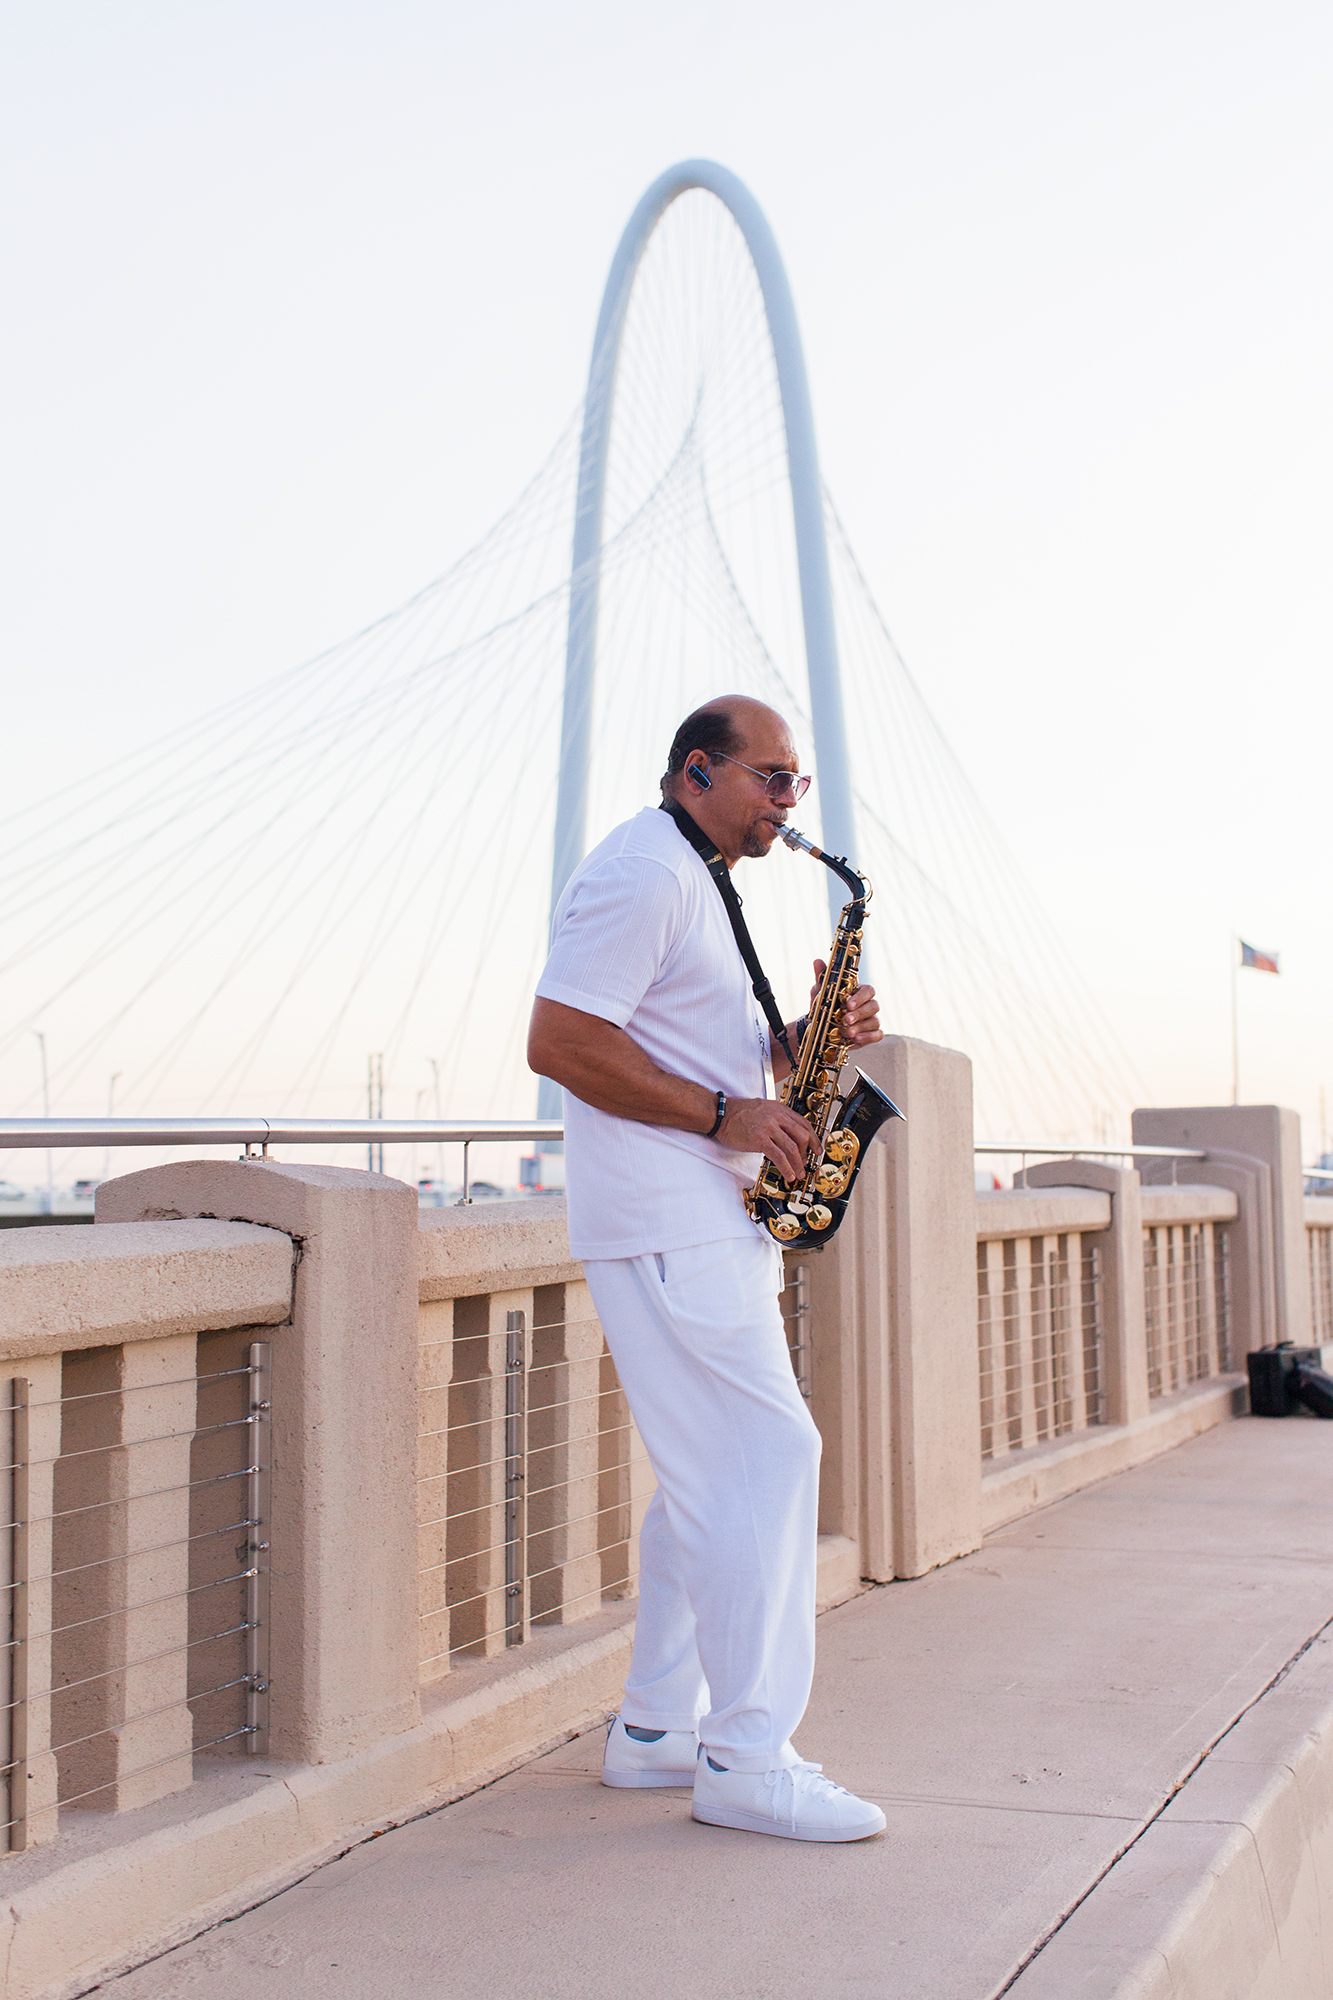 A saxophone player greeted DEB Dallas guests at the start of the evening.